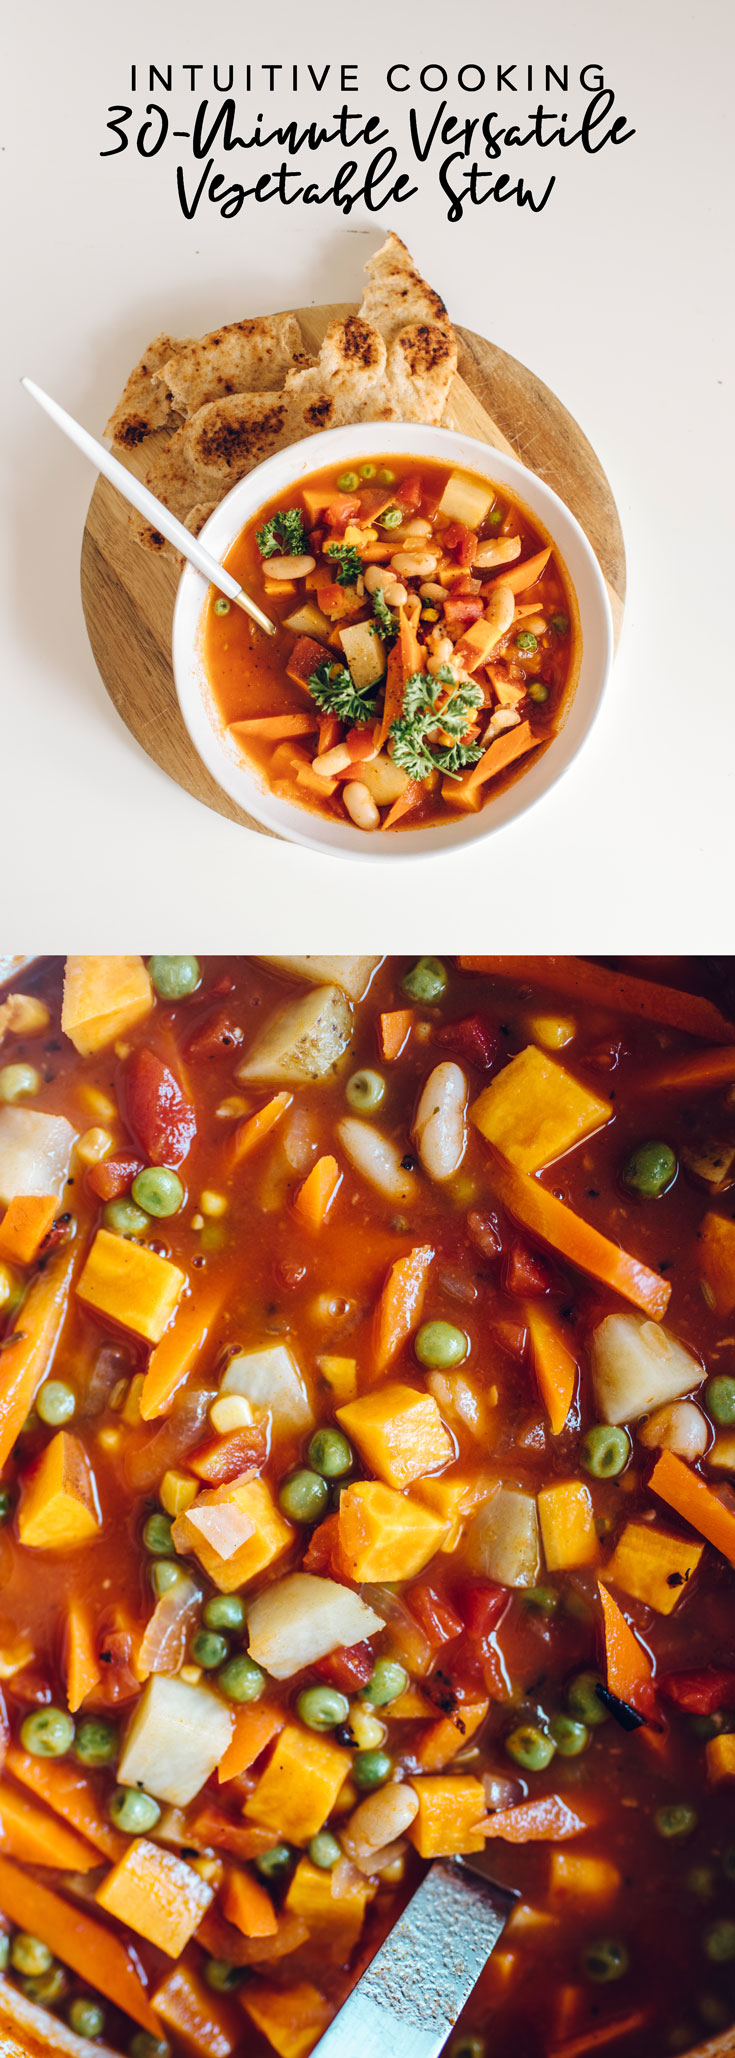 This Intuitive Cooking 30-Minute Versatile Vegetable Stew is the perfect hardy, vegan soup that you can meal prep for the week or serve to a big family! #soup #stew #vegan #vegansoup #veganstew #vegetablestew #intuitivecooking | Brewing Happiness